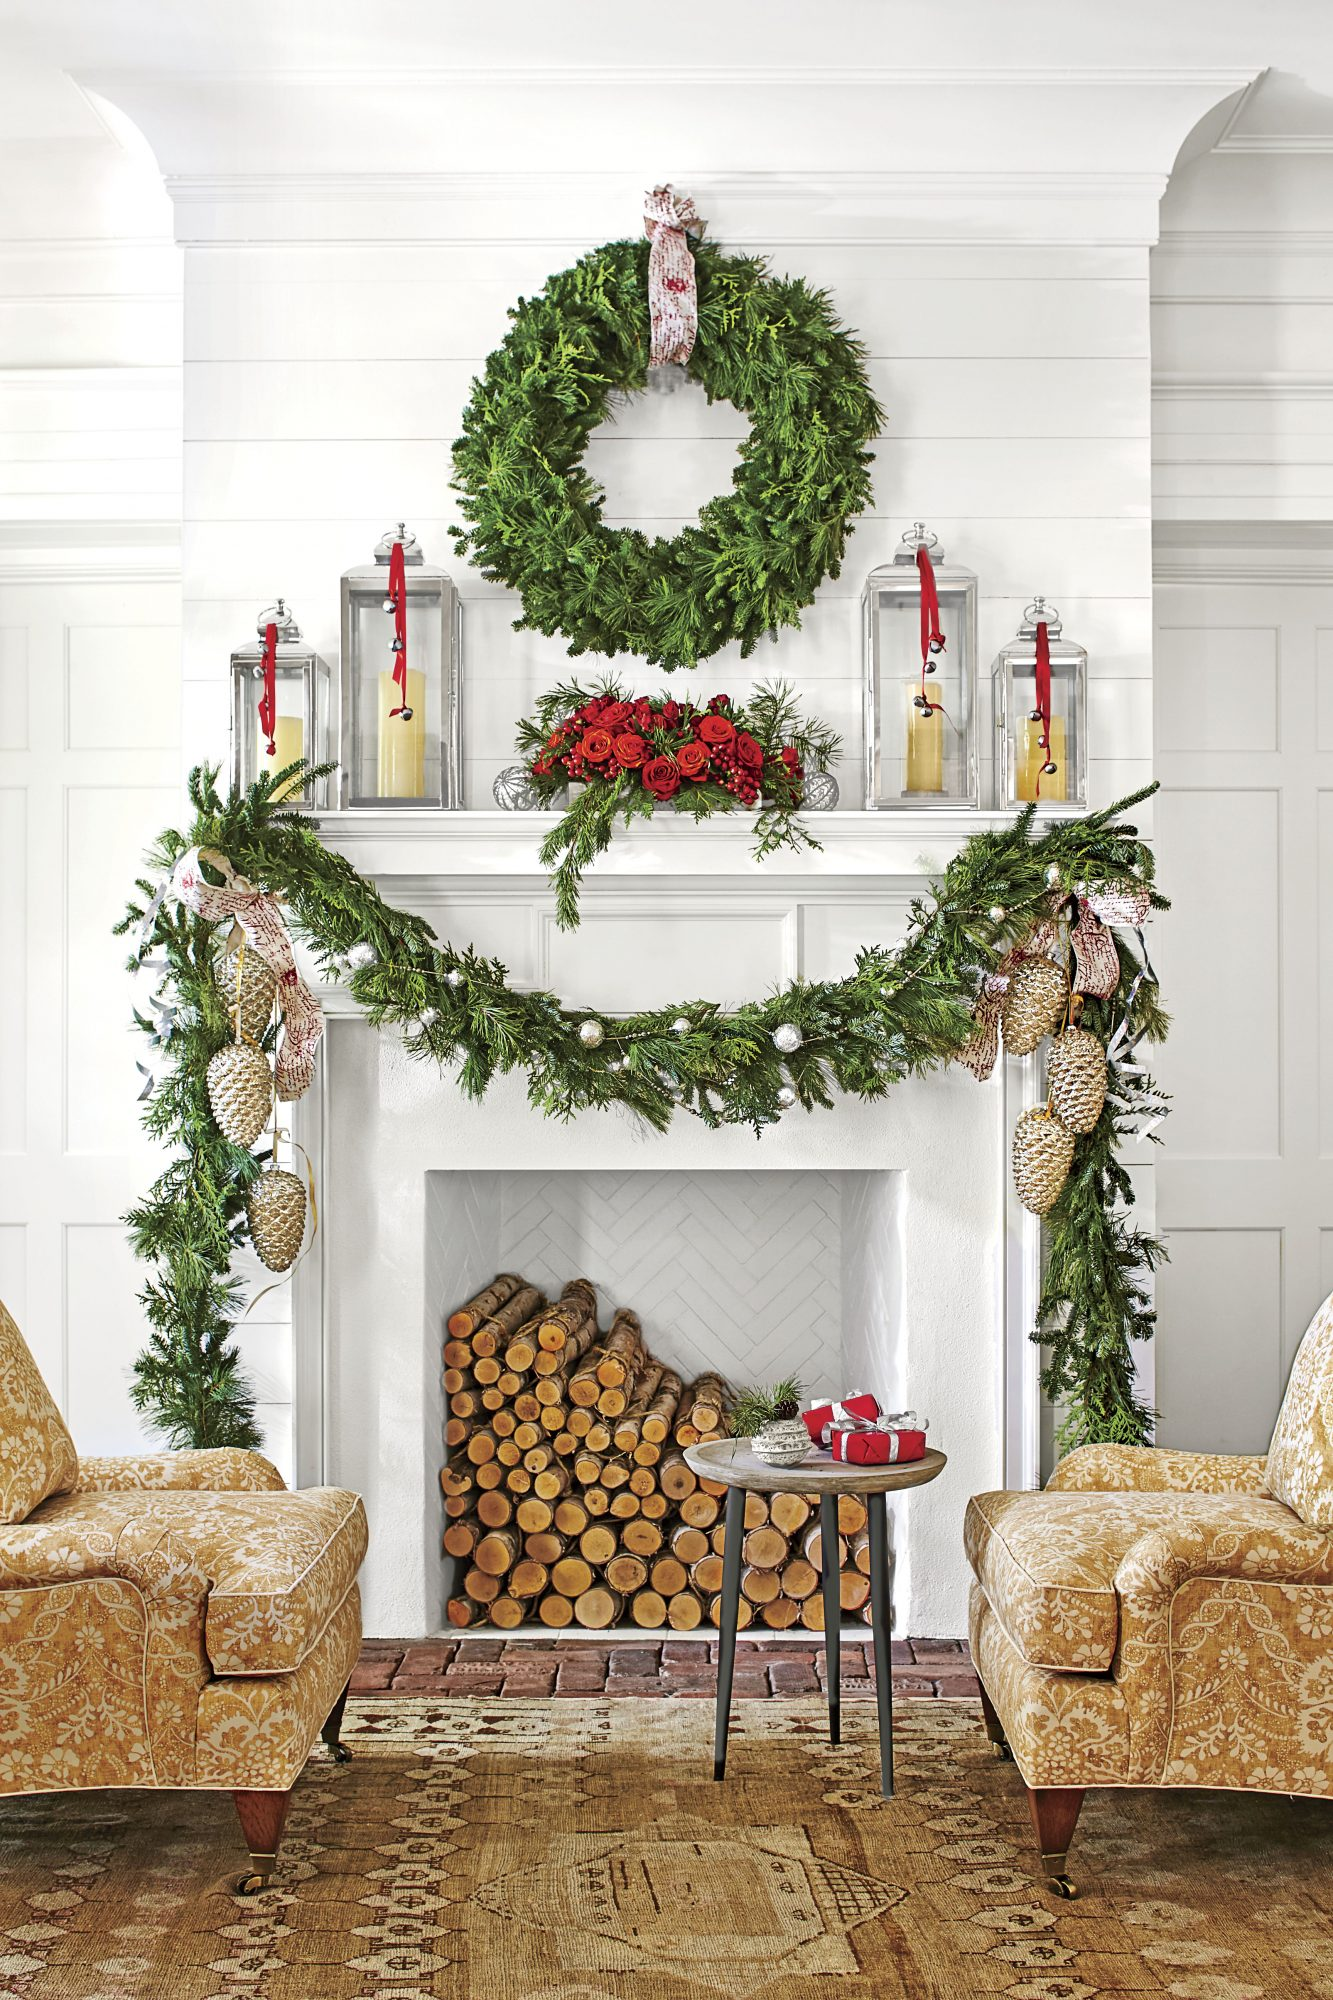 Red and Silver Greenery Display Over Mantel